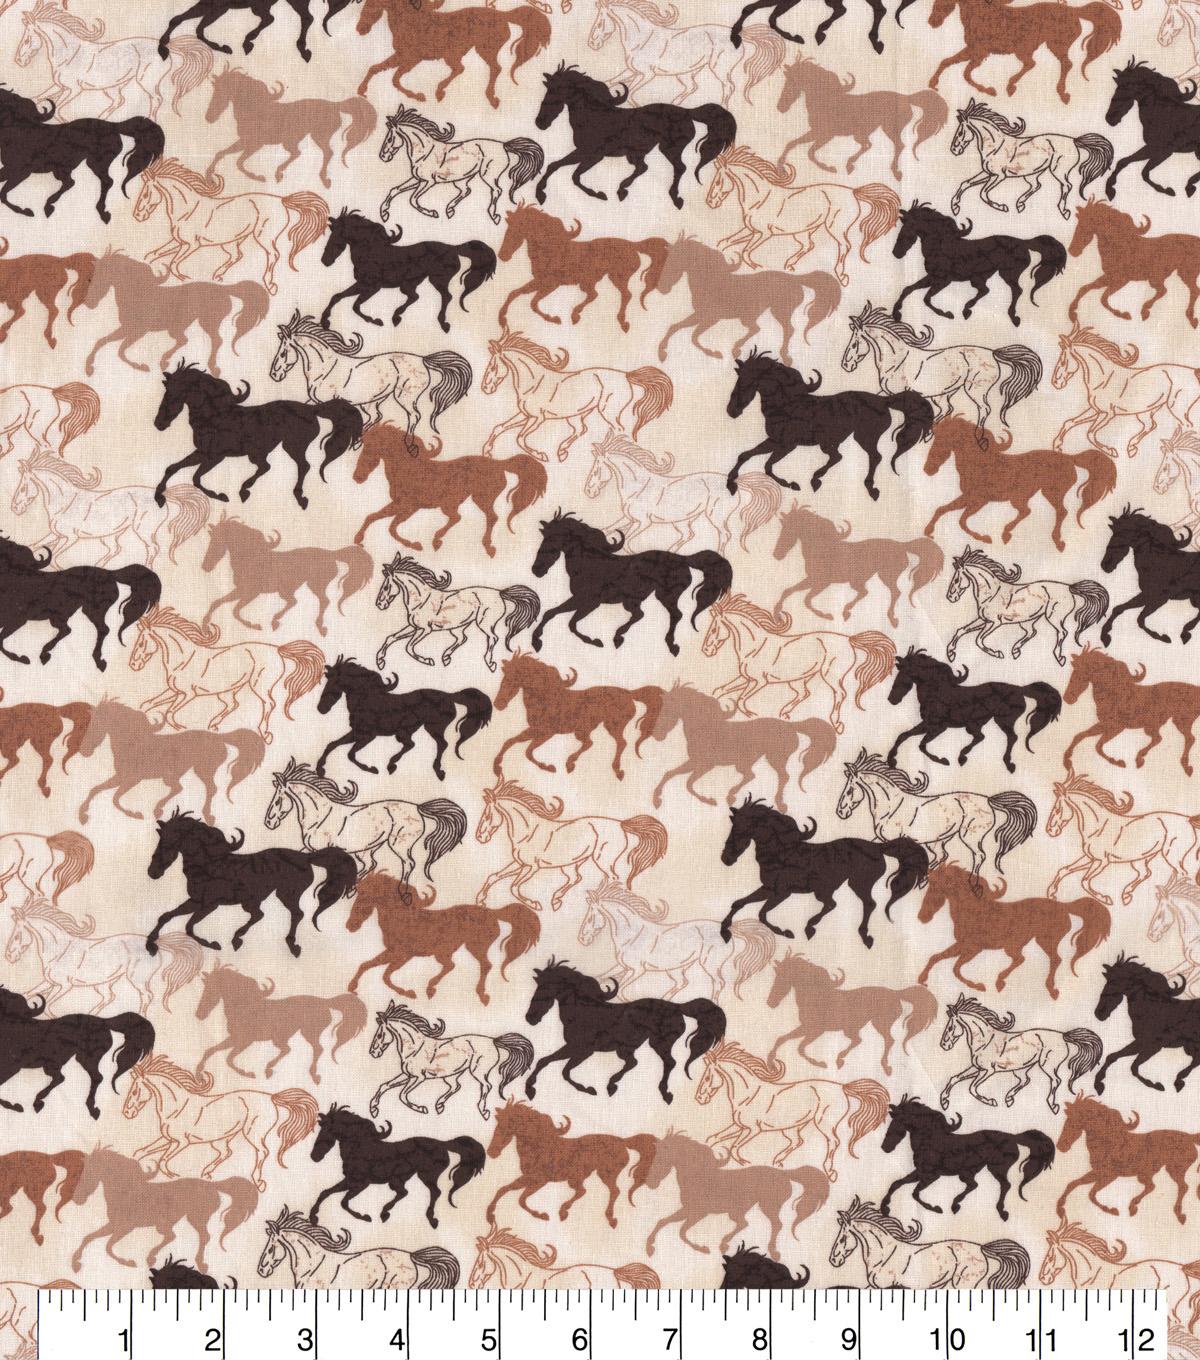 Novelty Cotton Fabric-Sketched Horses on Cream